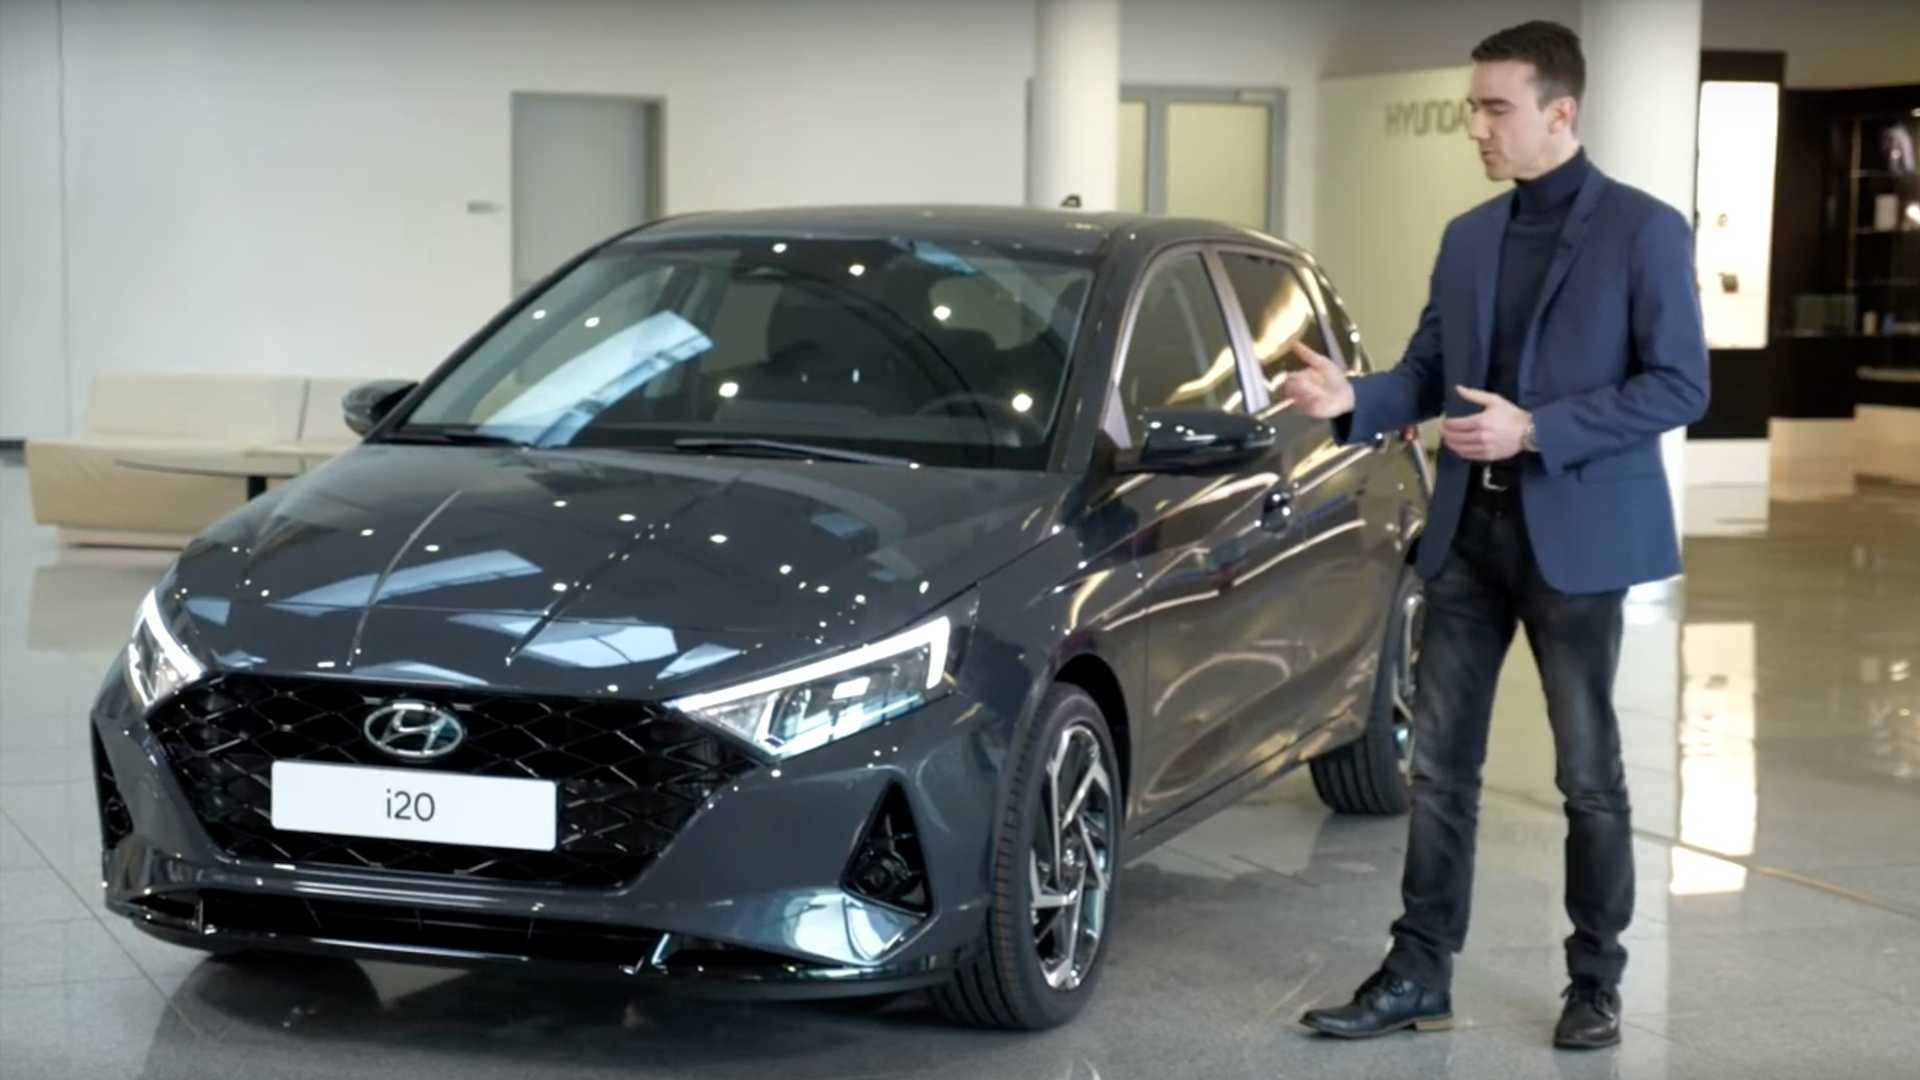 2021 Hyundai I20 Price and Release date